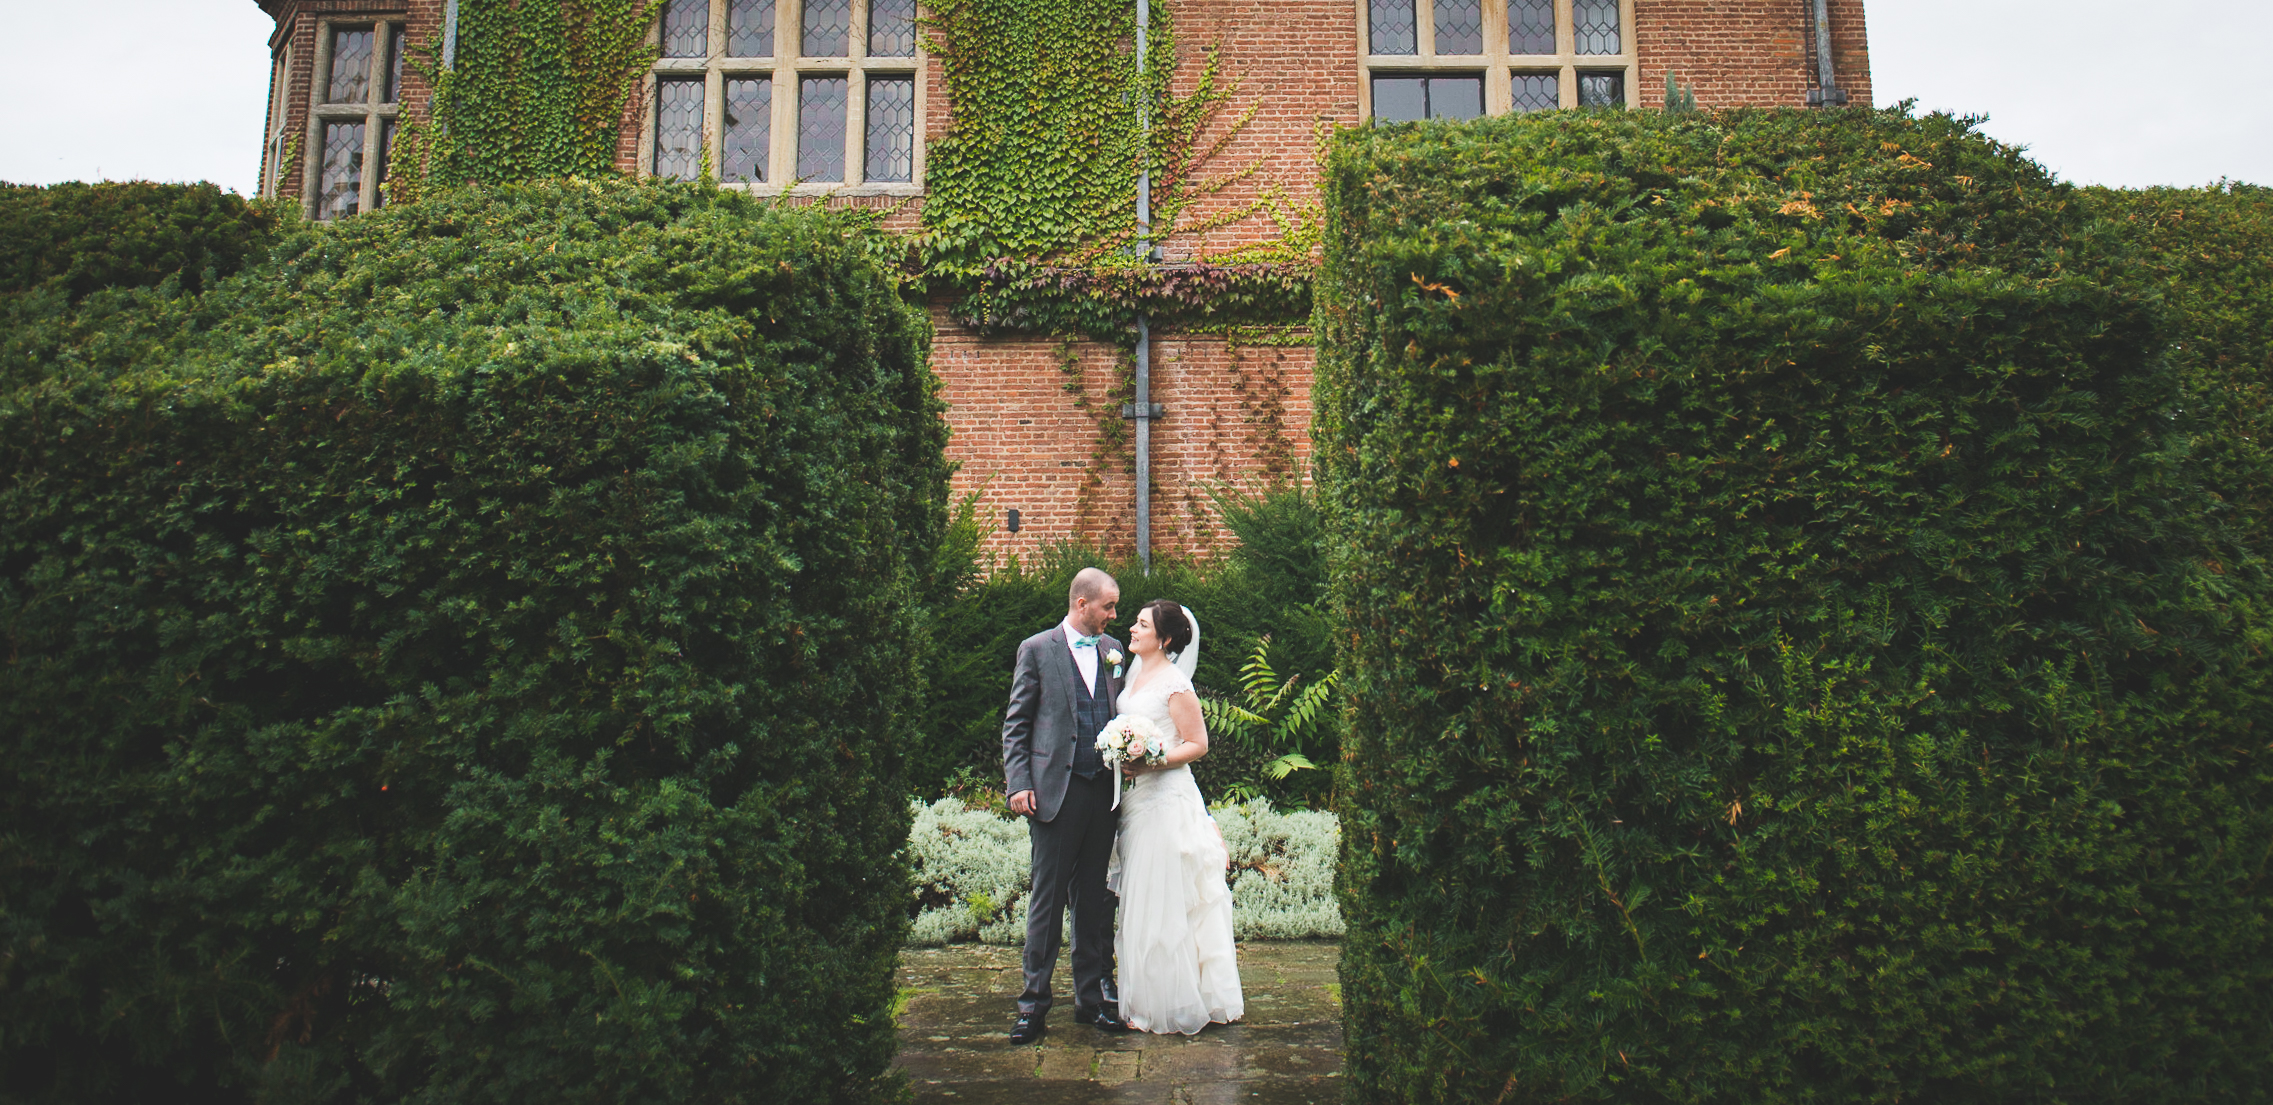 Horwood House Hotel, Bride and Groom, Break in the day, break in the bush, rainy day wedding